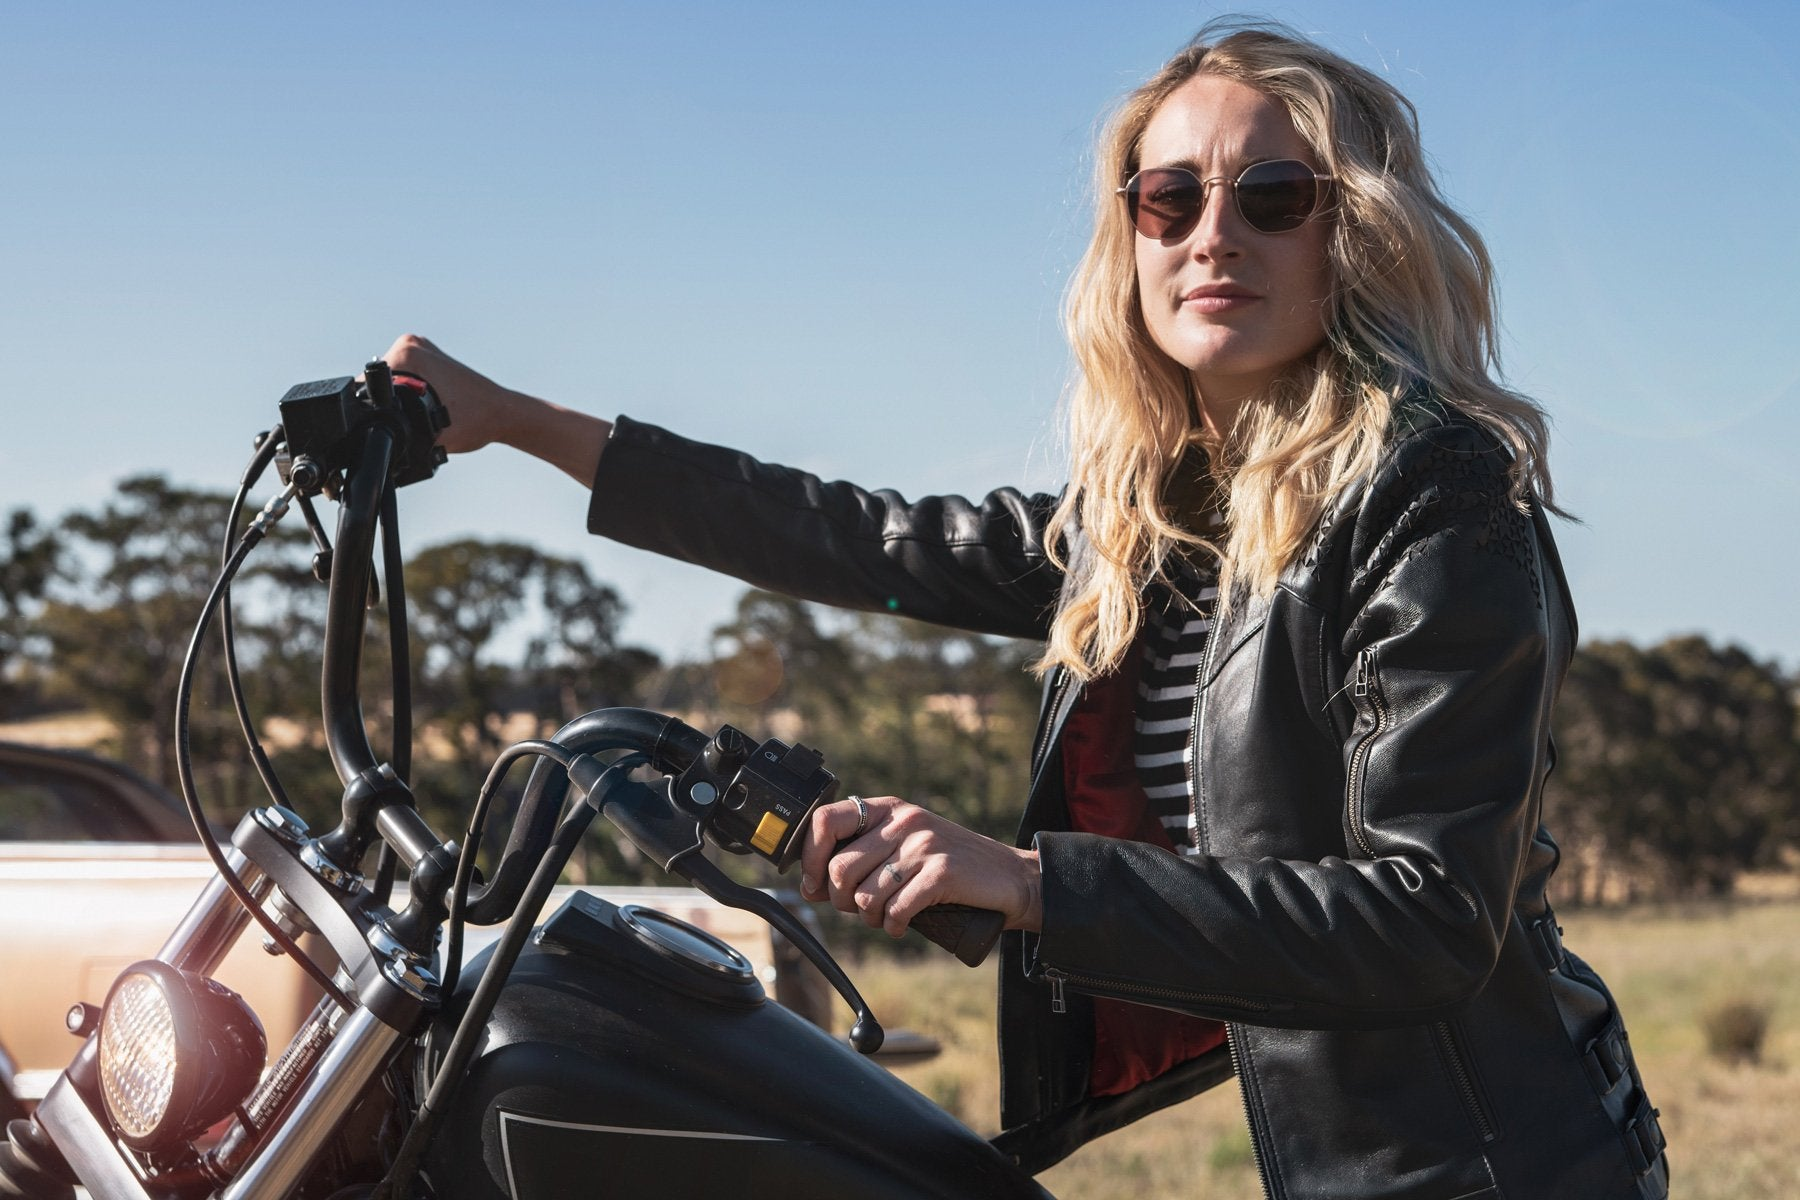 Black Arrow Label Women's Motorcycle Gear available at Moto Est Online Australia